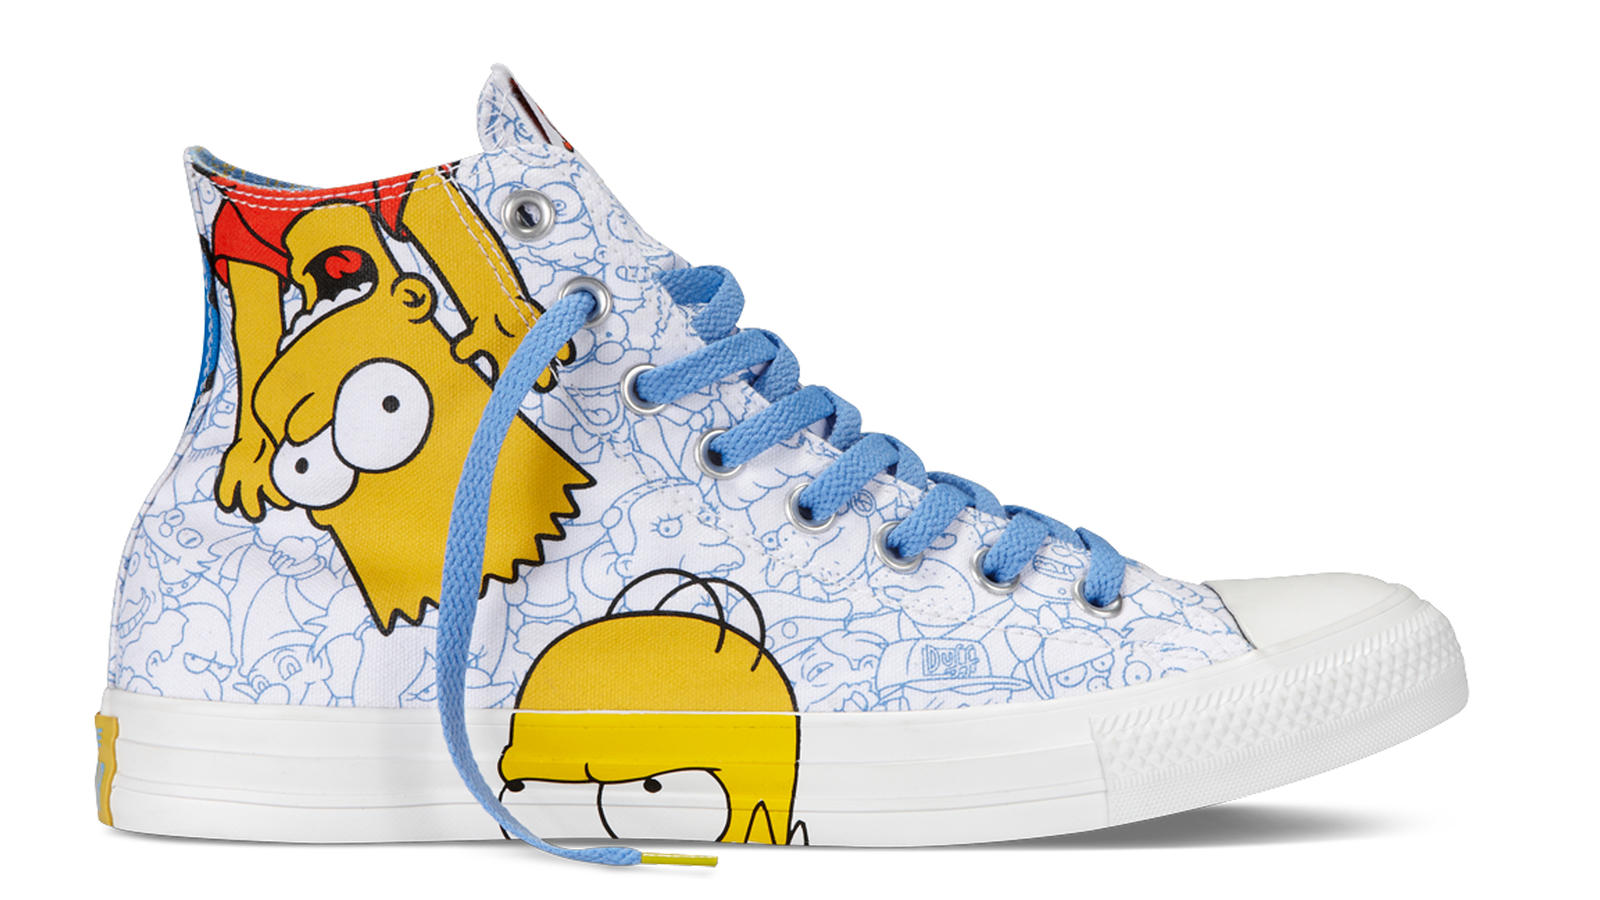 toca el piano sala superficie  Converse Launches Footwear Collection Featuring